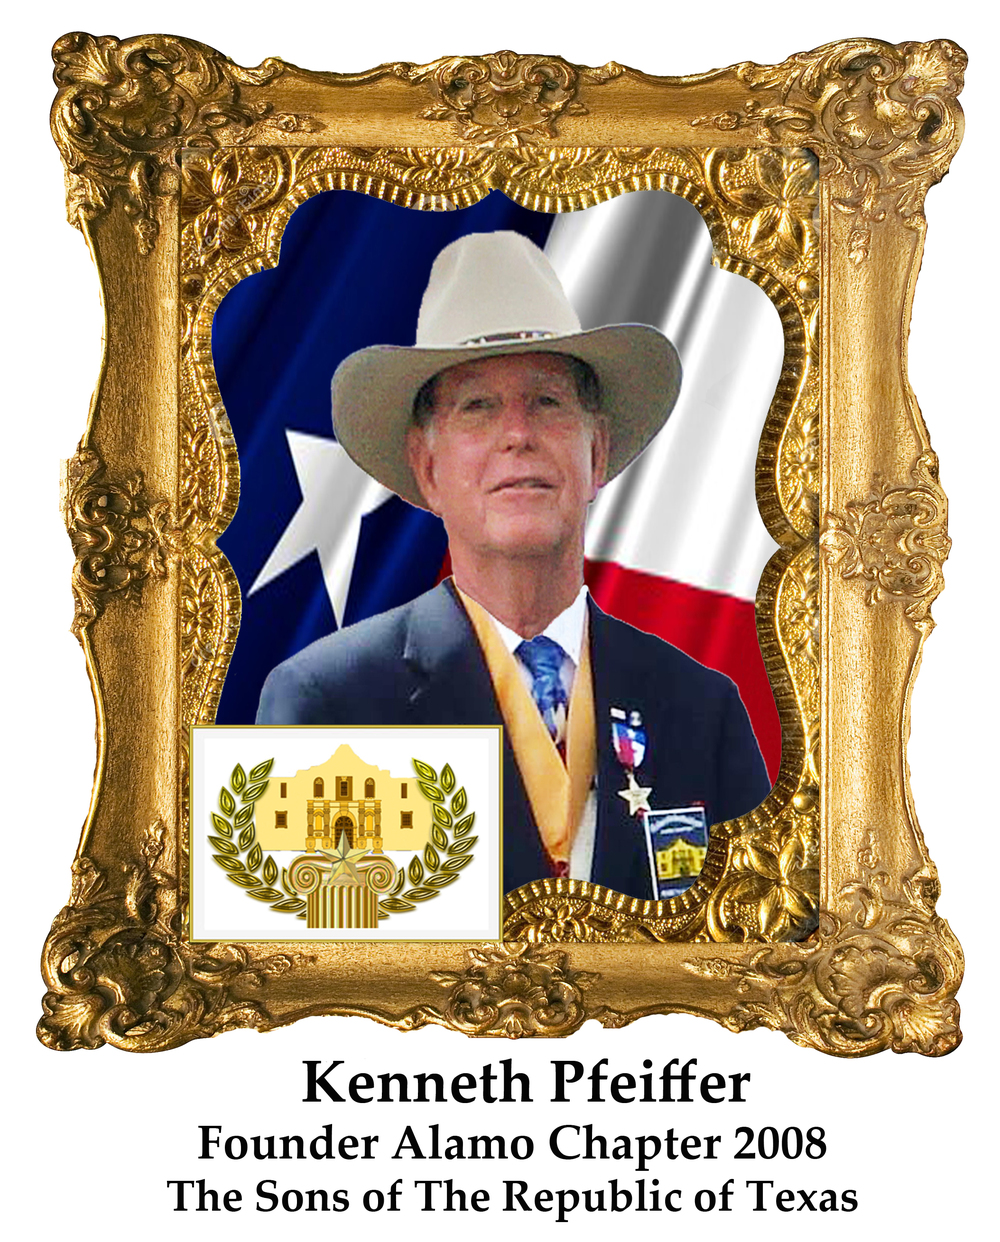 Kenneth Pfeiffer.jpg